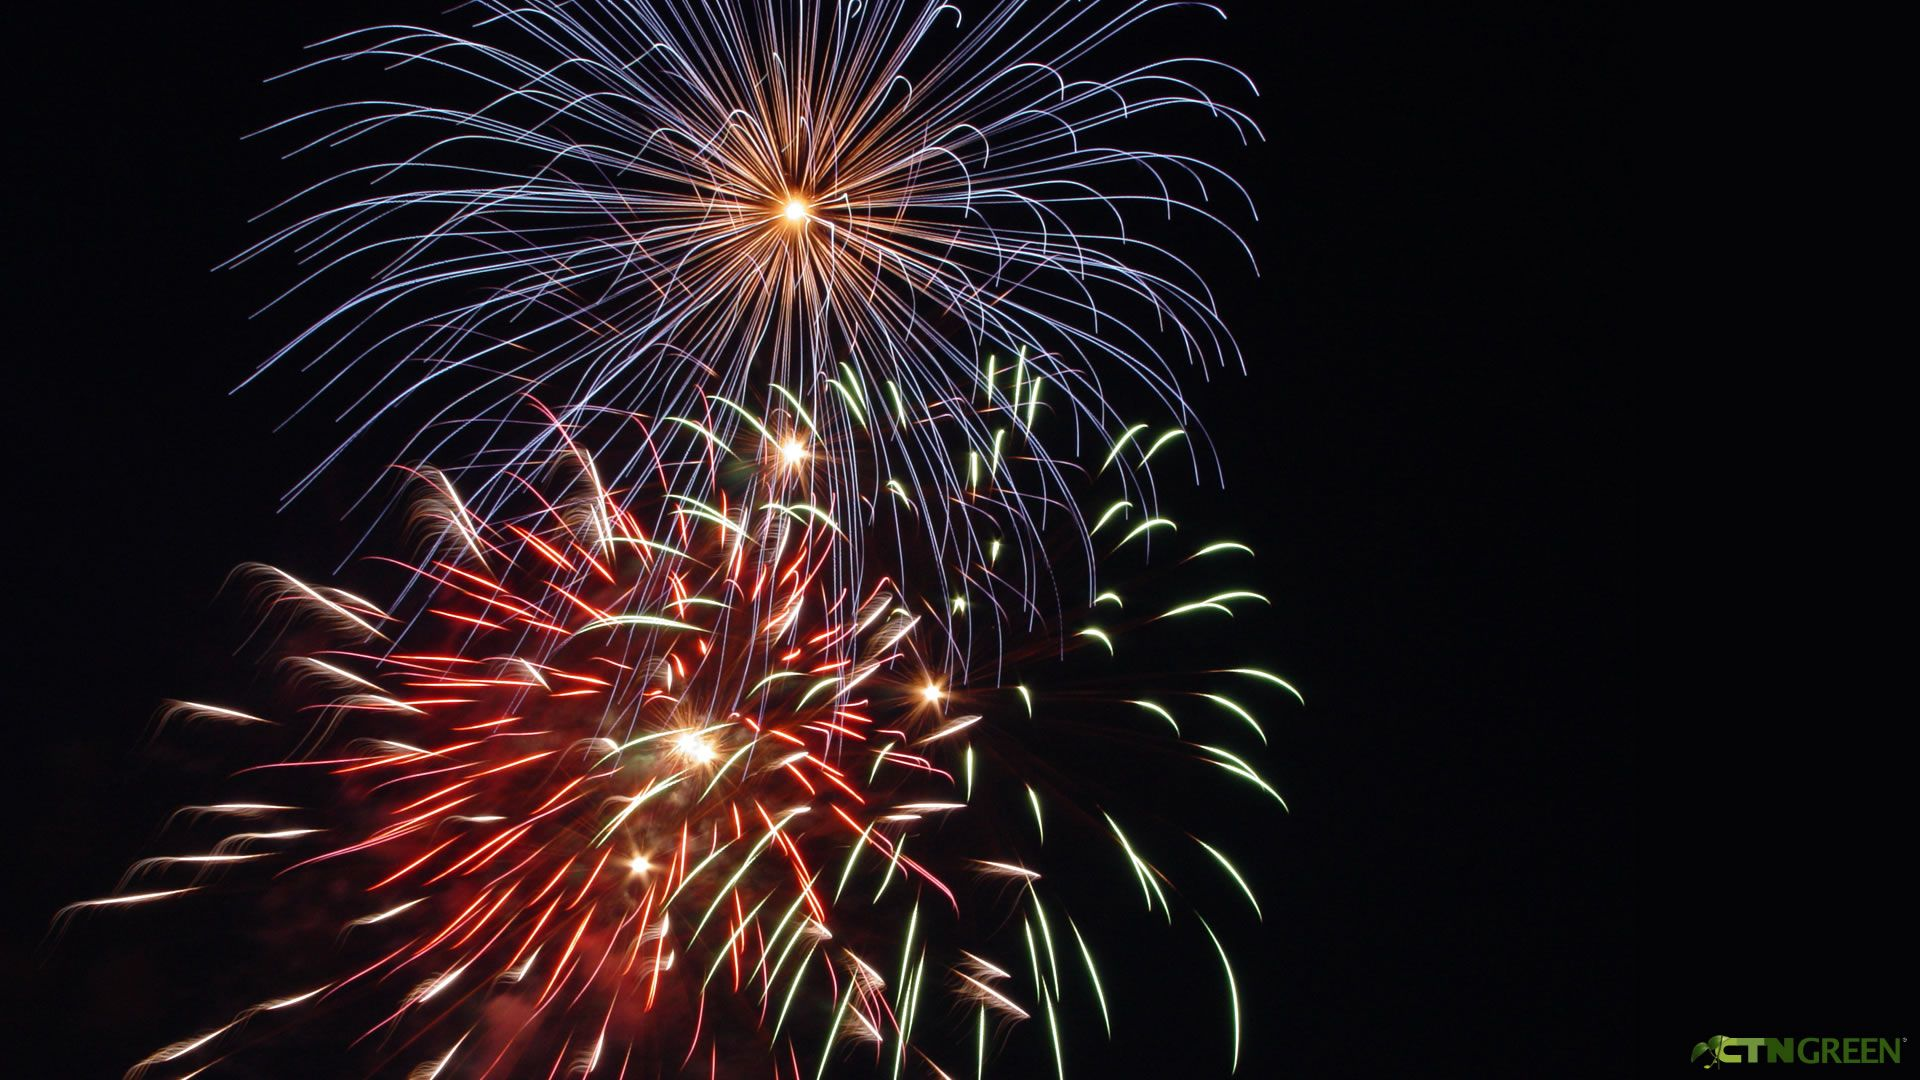 Pin By Debbie Shea On Fire Works Fireworks Wallpaper Fireworks Background Abstract Wallpaper